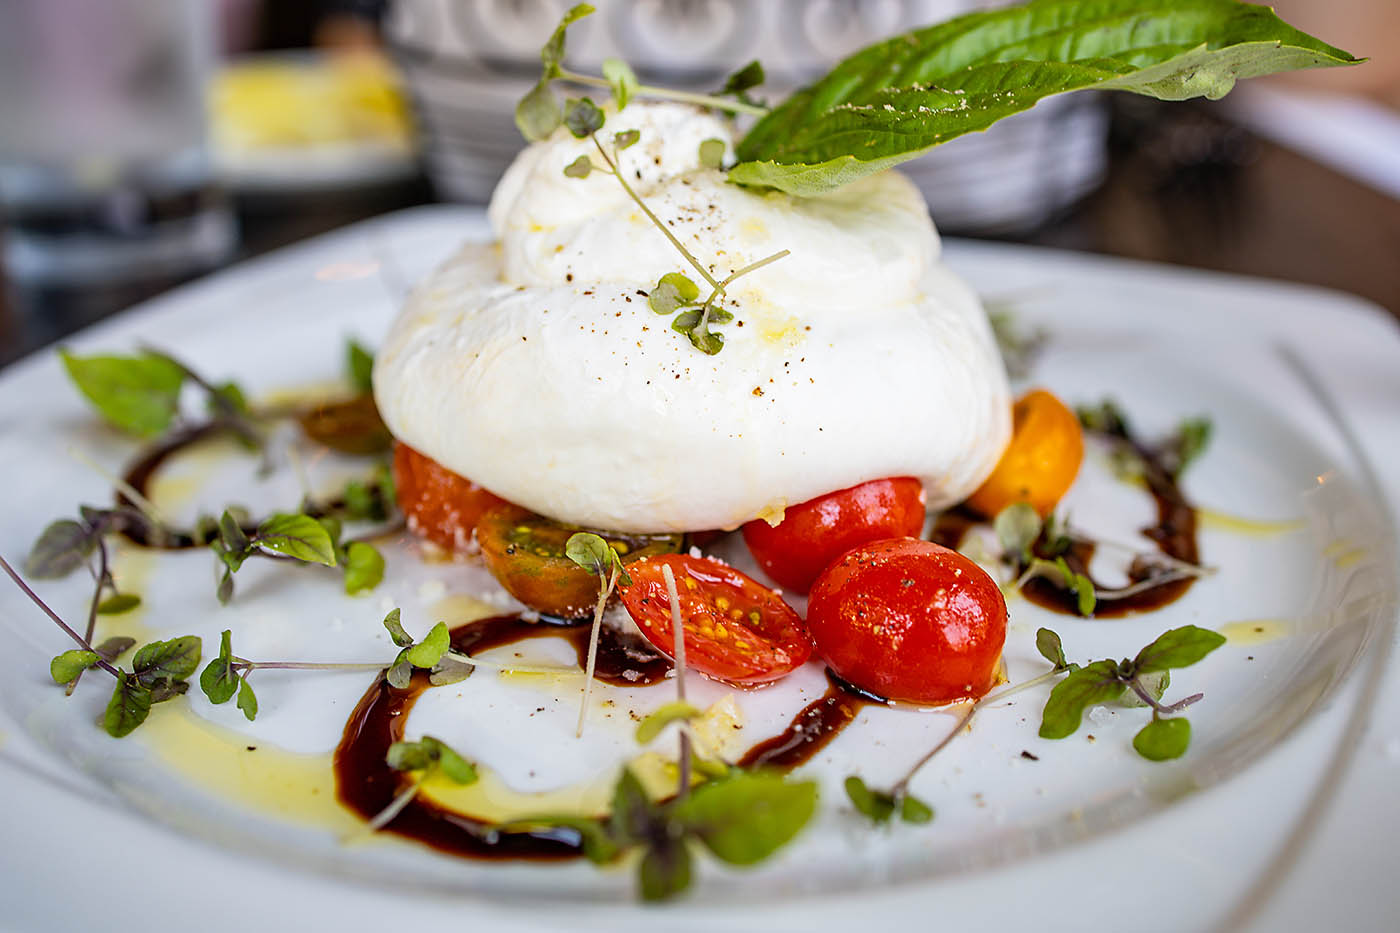 Fresh burrata cheese with tomatoes